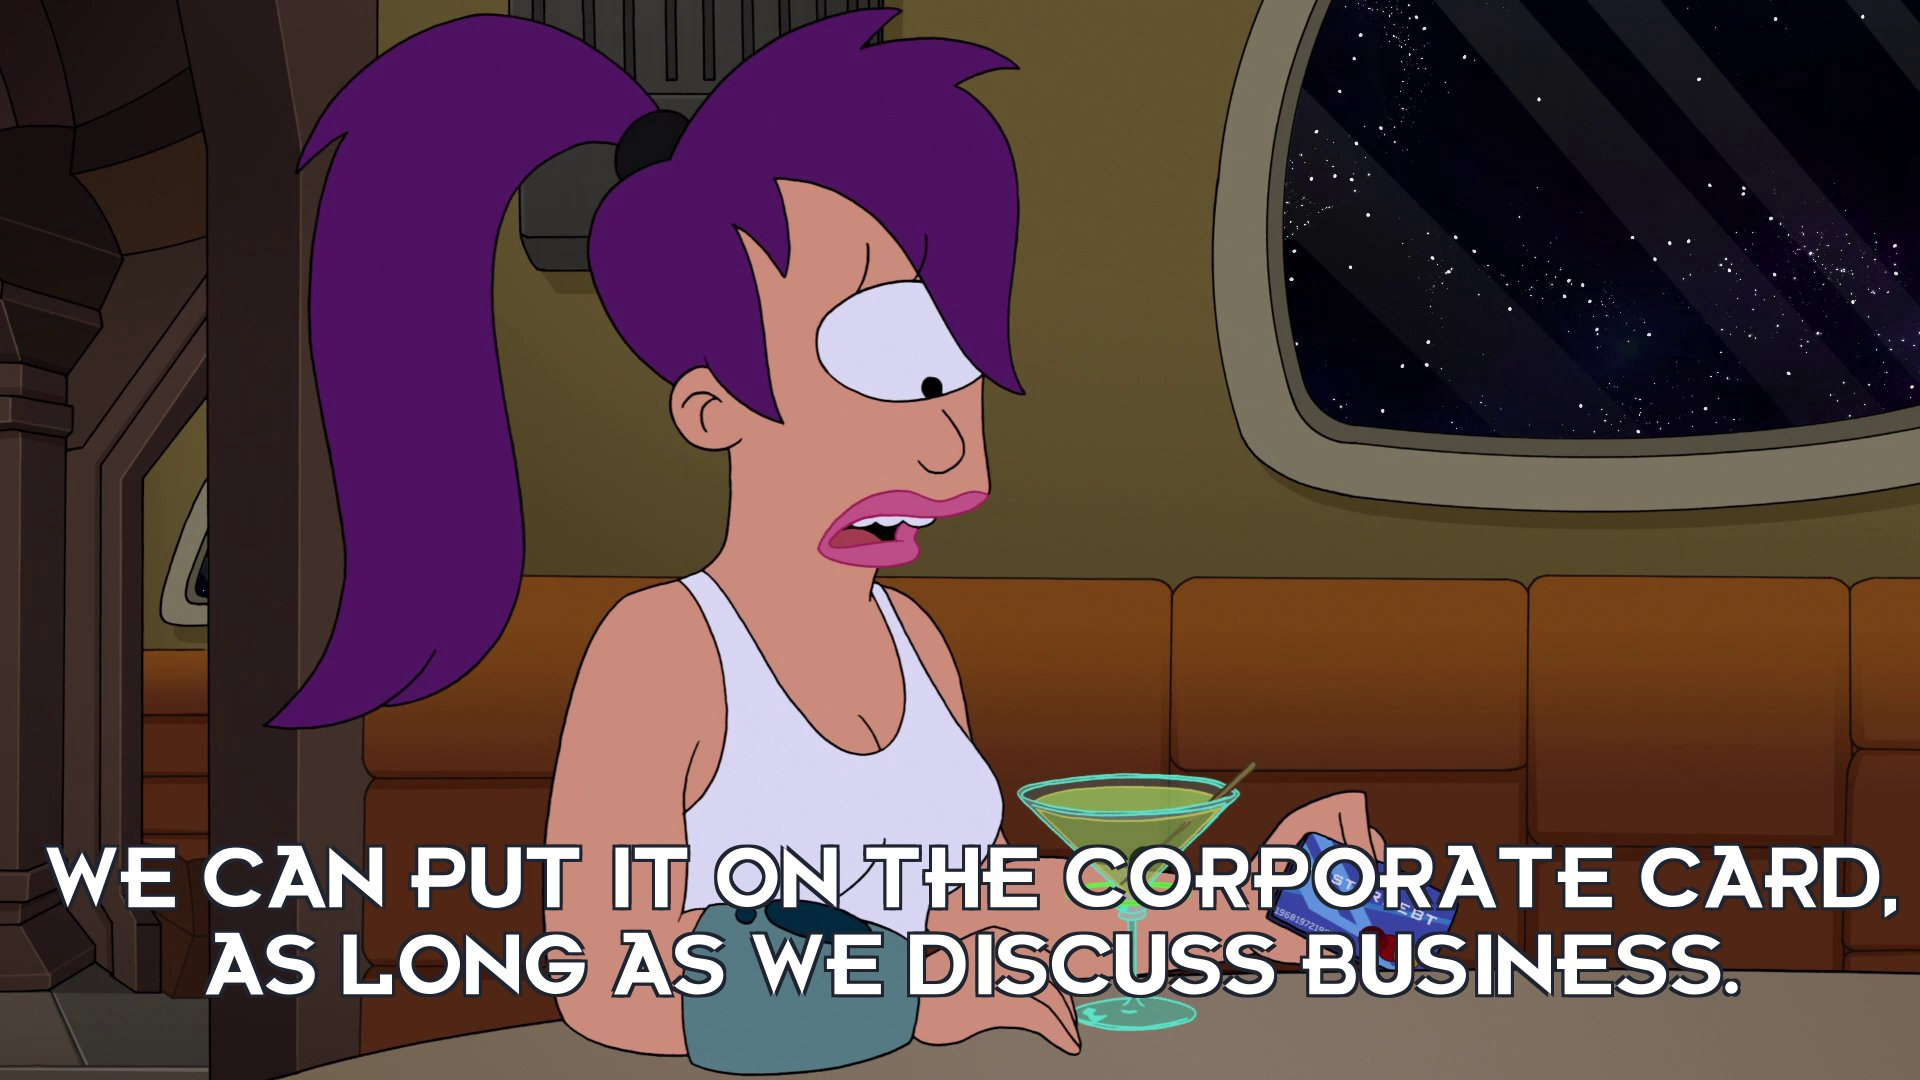 Turanga Leela: We can put it on the corporate card, as long as we discuss business.